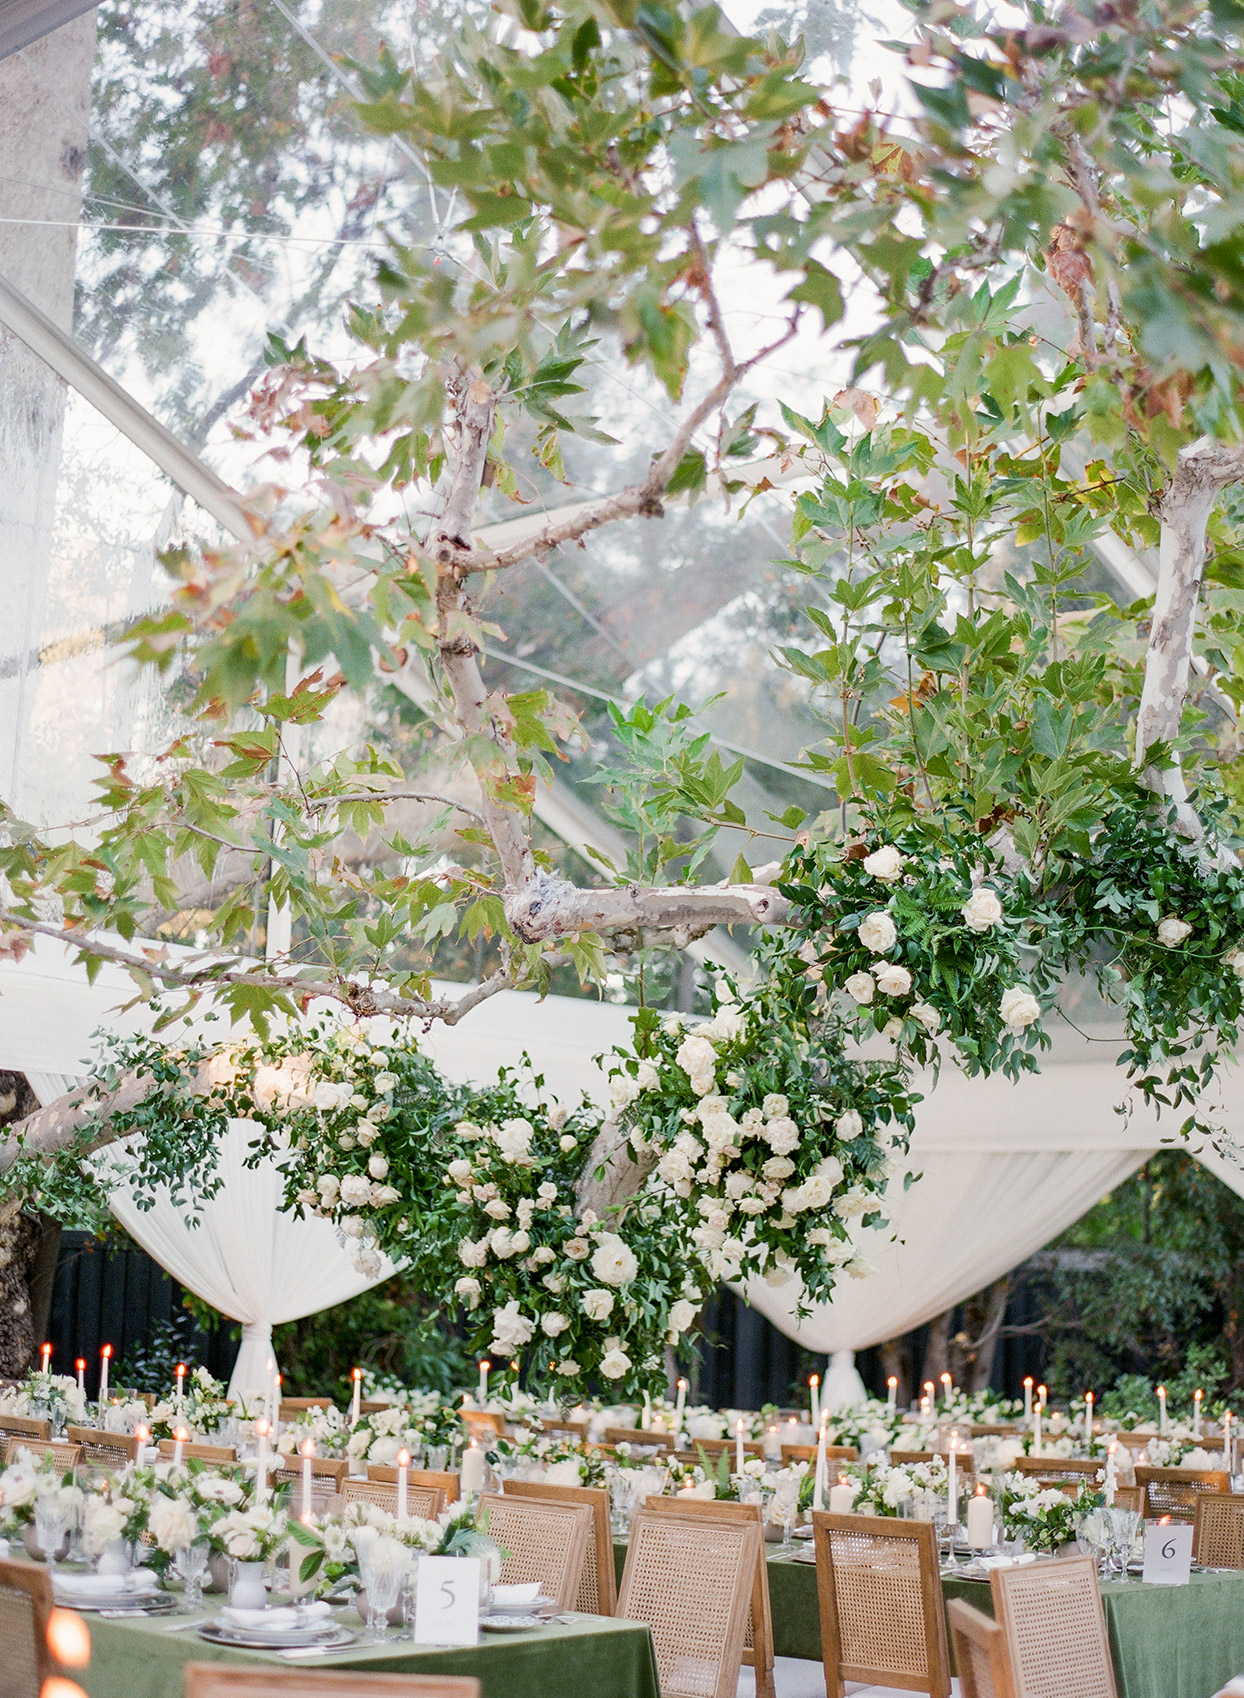 floral garland hanging on tree inside reception tent